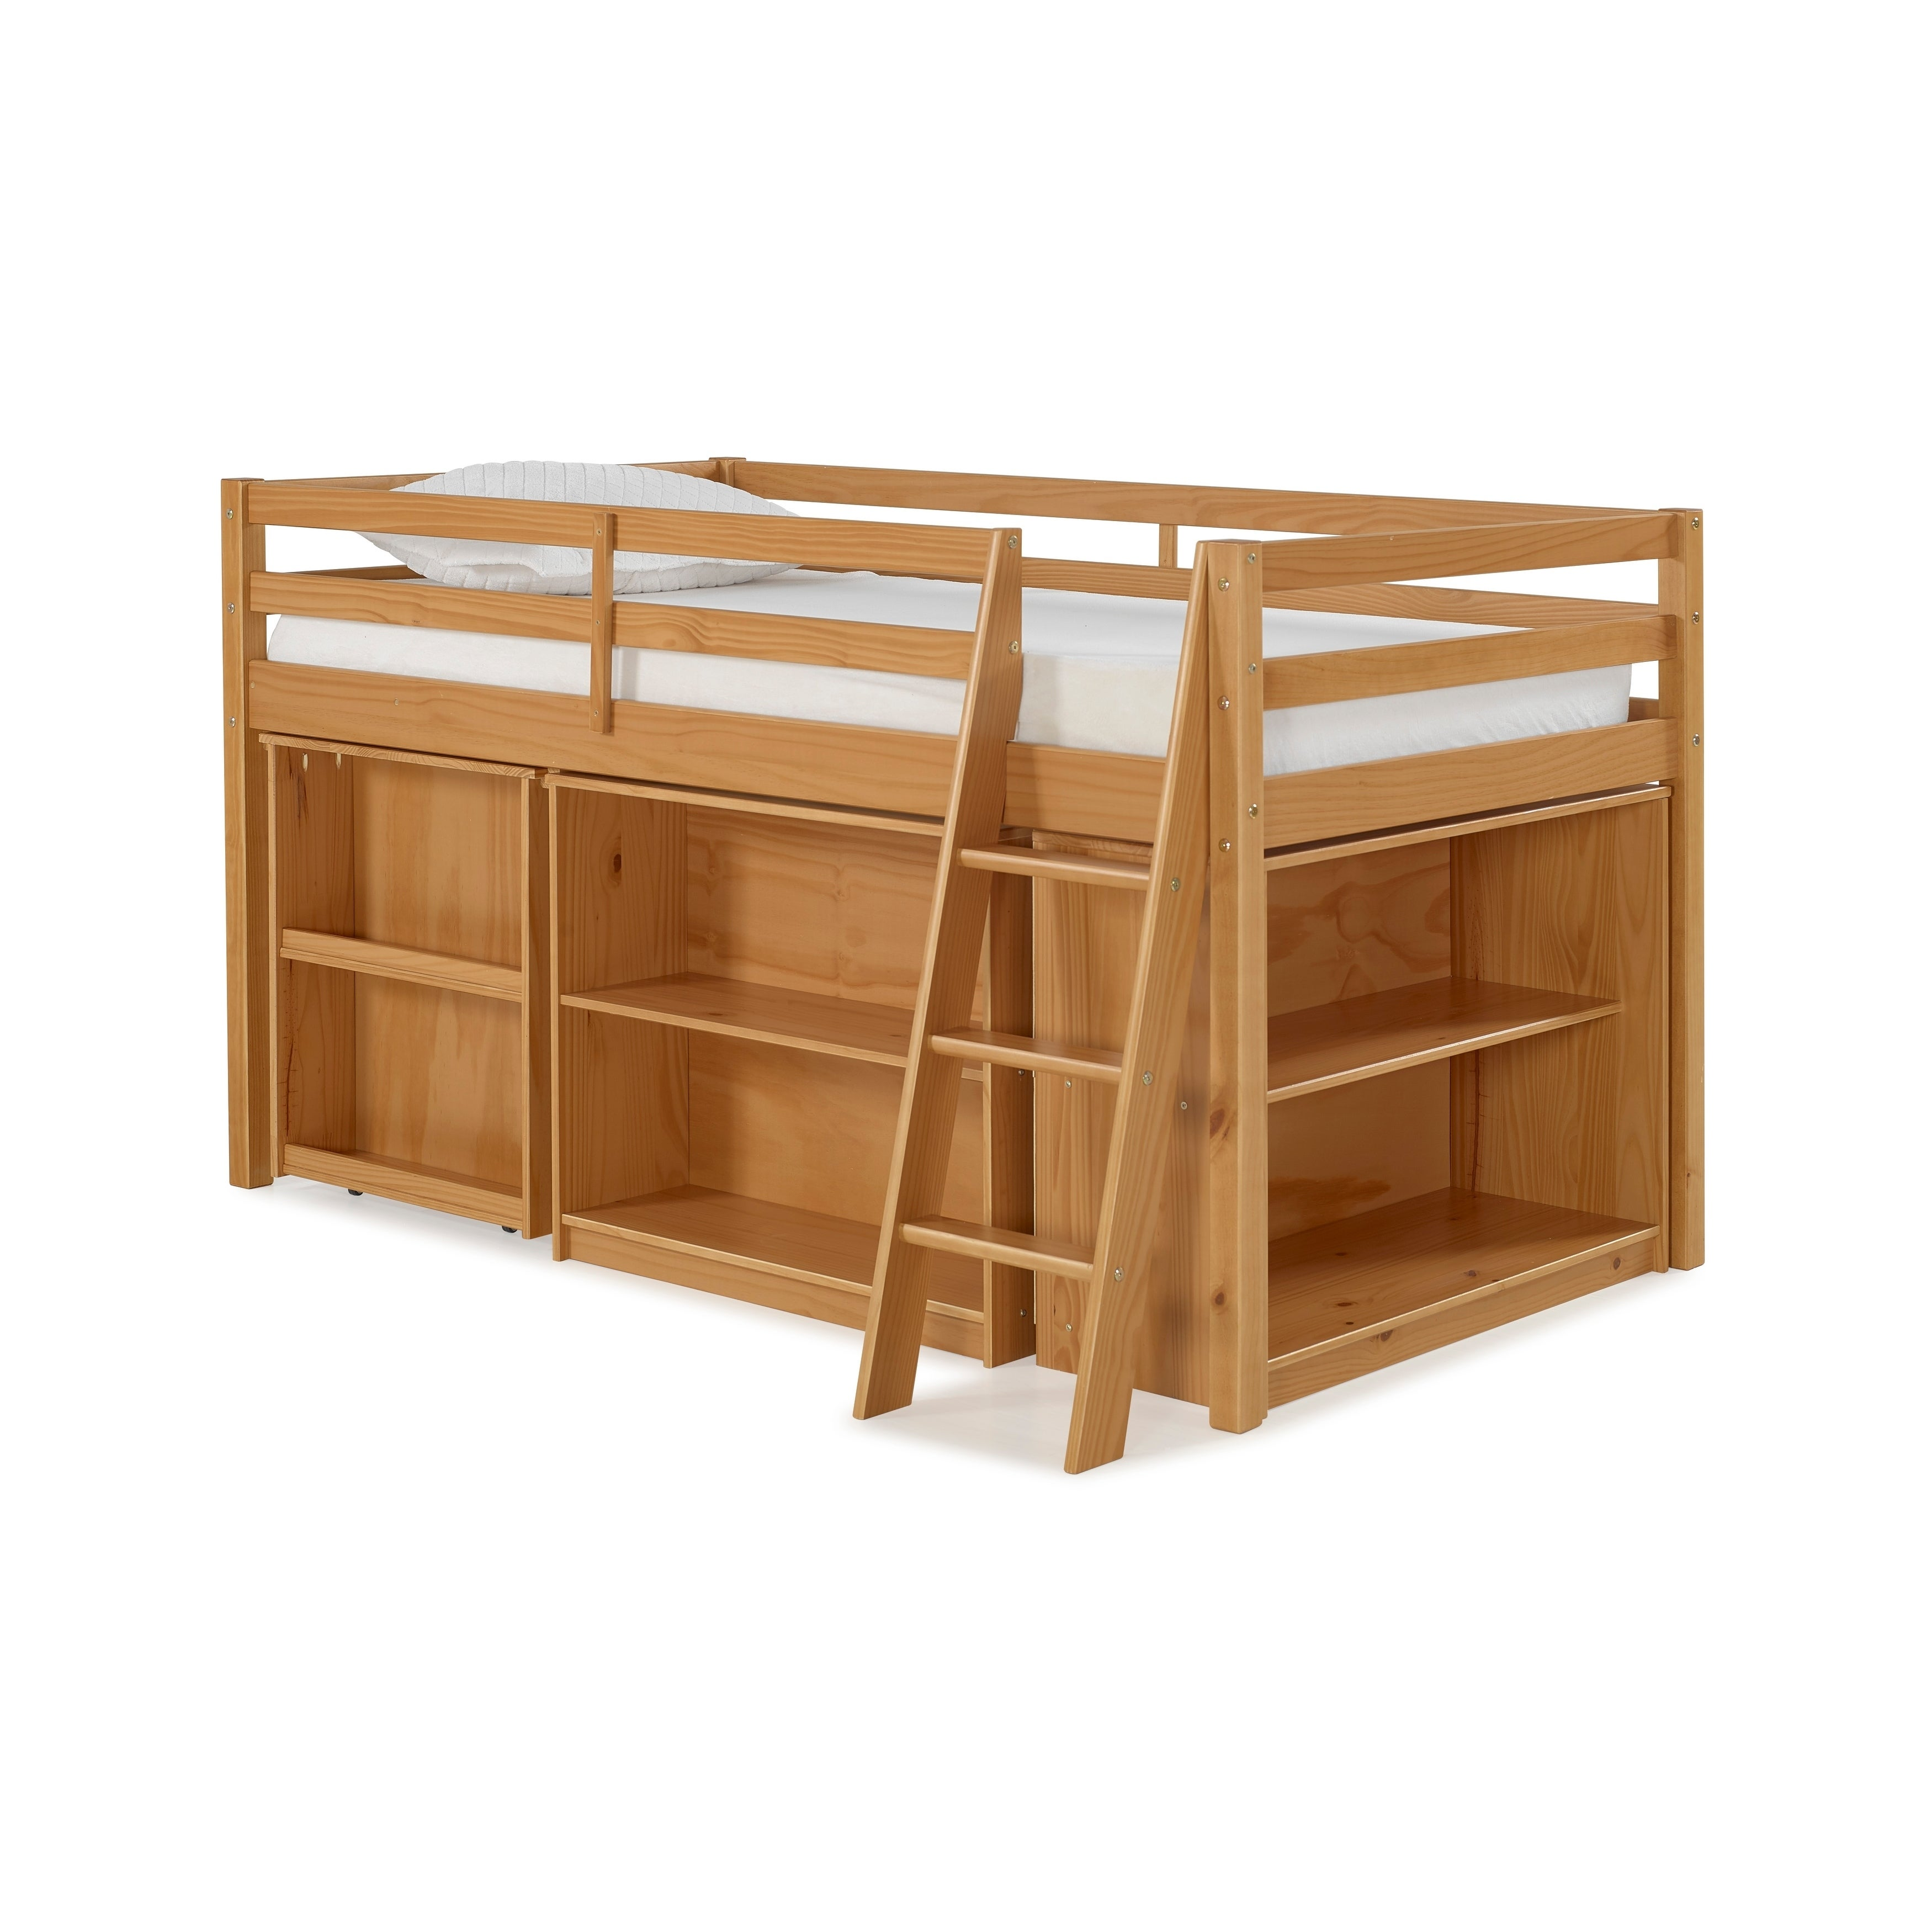 Superbe Shop Roxy Junior Loft Solid Wood Bed With Pull Out Desk, Shelving, And  Bookcase   On Sale   Free Shipping Today   Overstock   18105357